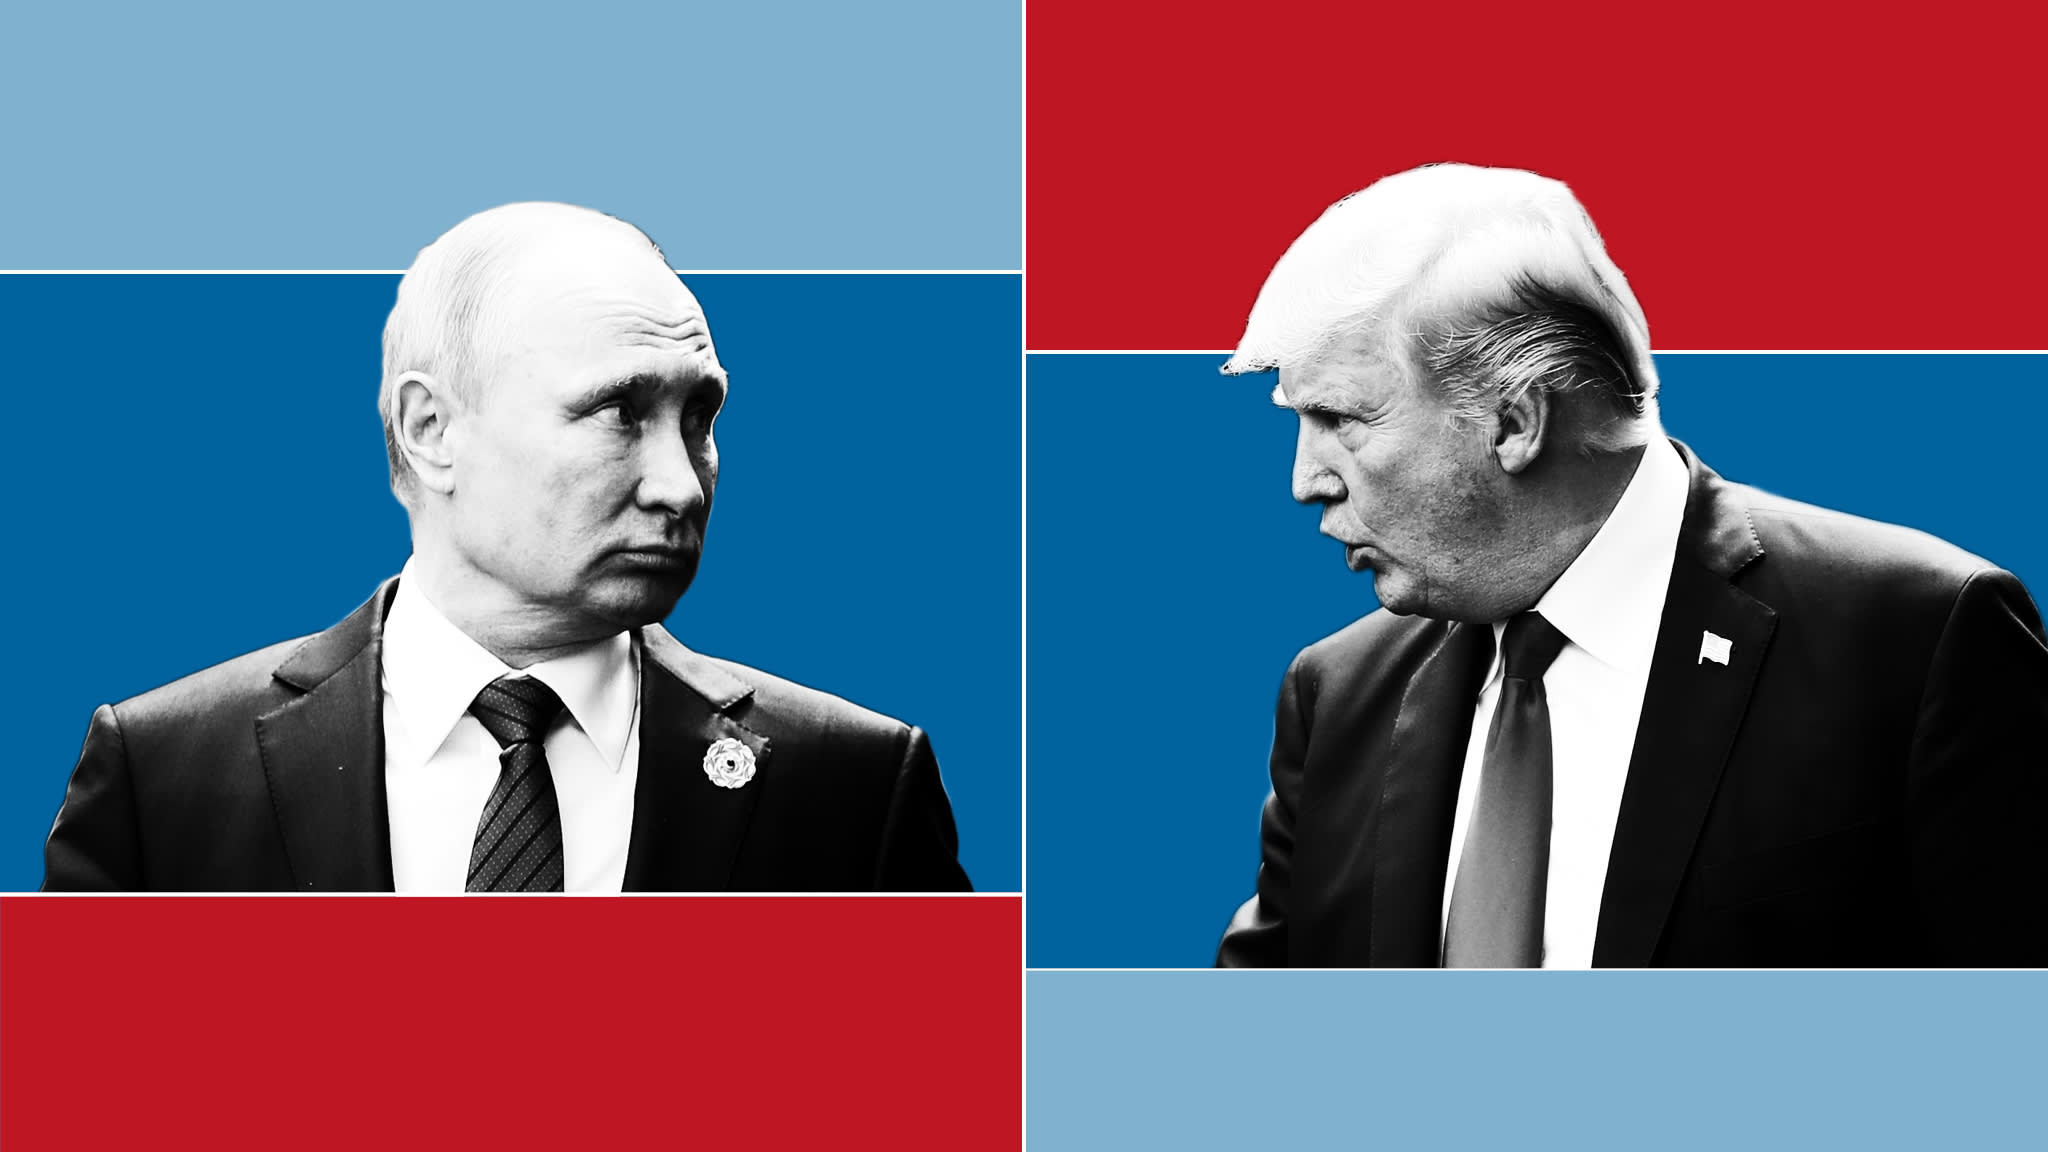 Trump and Putin: inside the muddled American policy on Russia